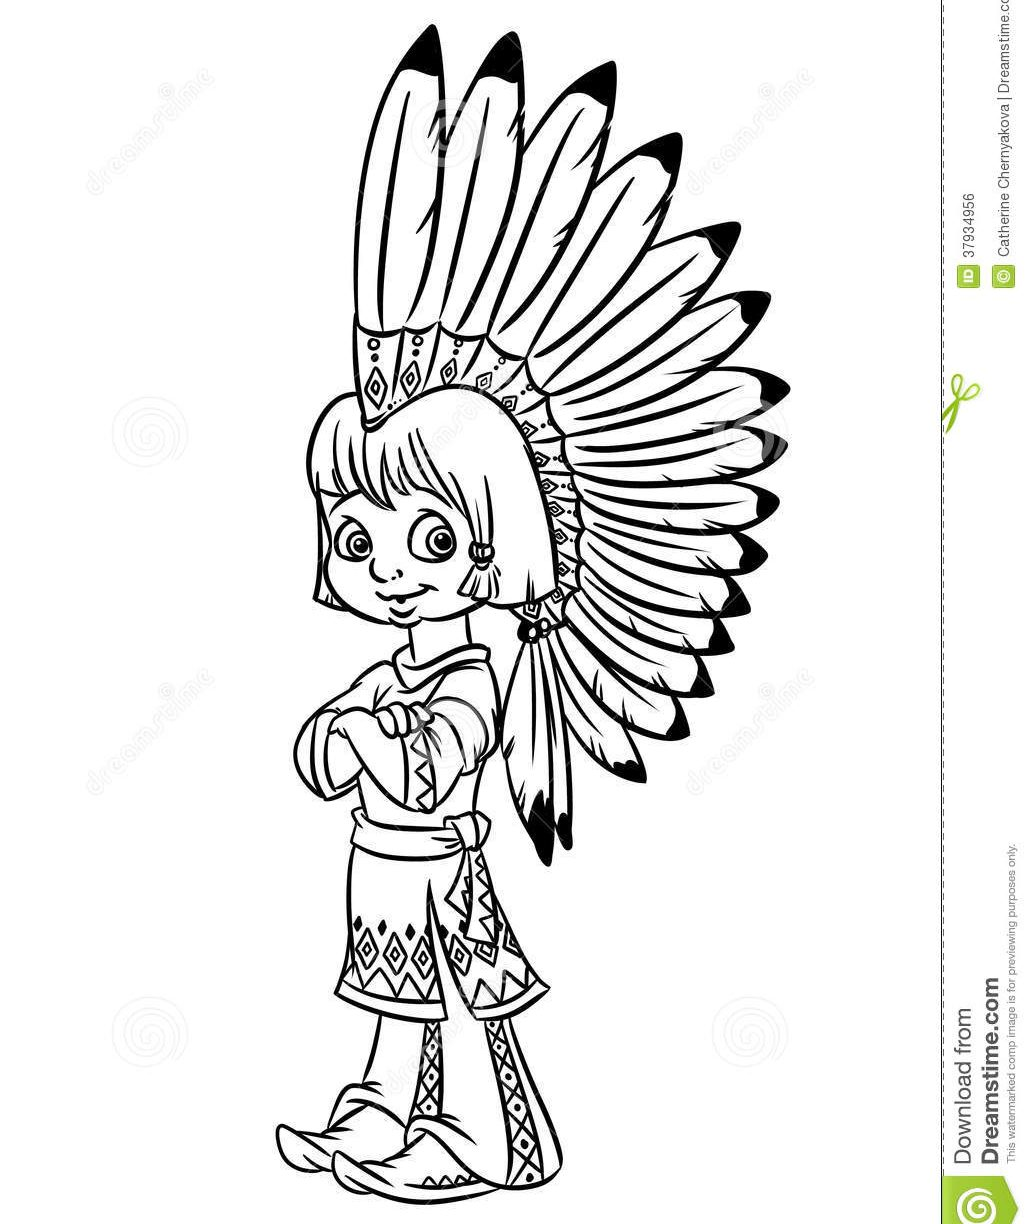 1031x1224 Native Americans Coloring Pages Indian Face Boy Page Free